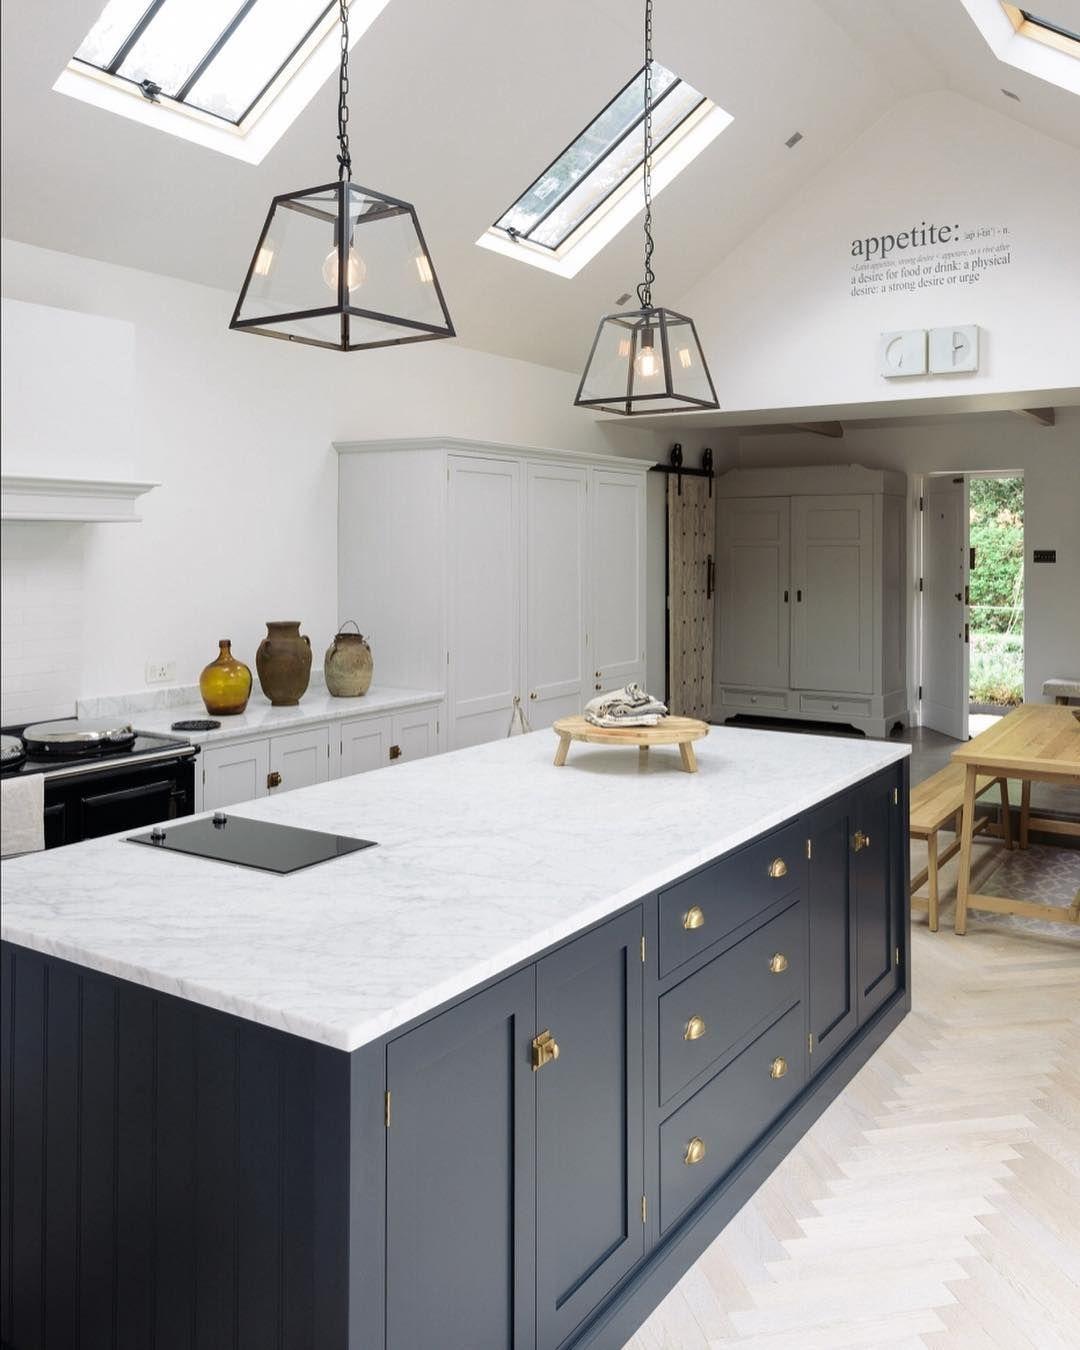 Kitchen Cabinets With High Ceilings: Pin By Melissa Jamison On Home Ideas